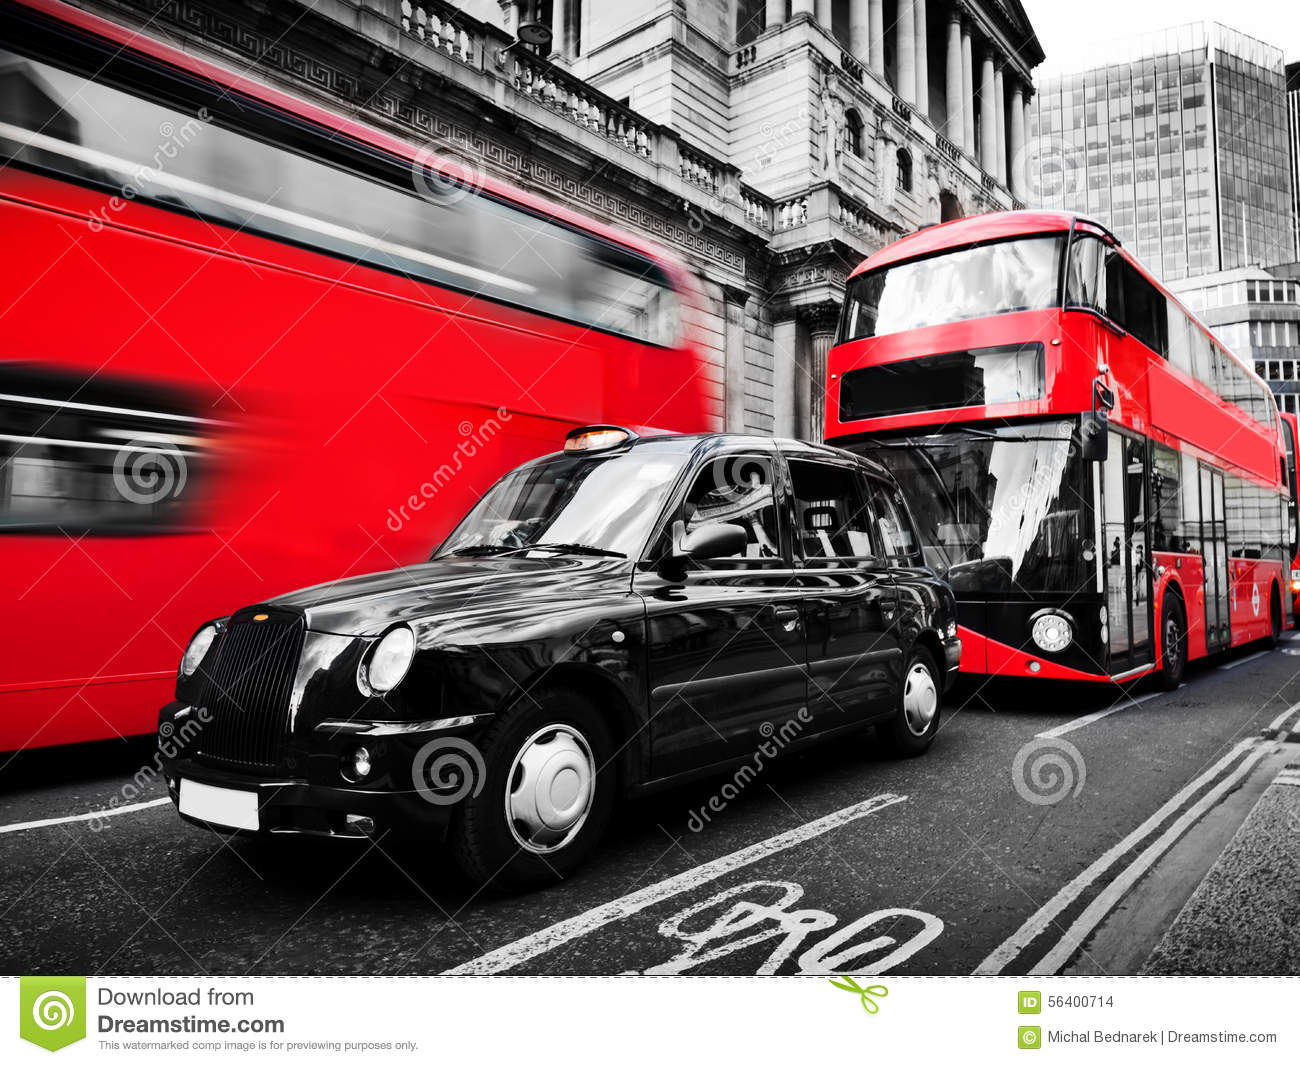 symboles de londres r u autobus rouges taxi noir rebecca 36 photo stock image du londres. Black Bedroom Furniture Sets. Home Design Ideas